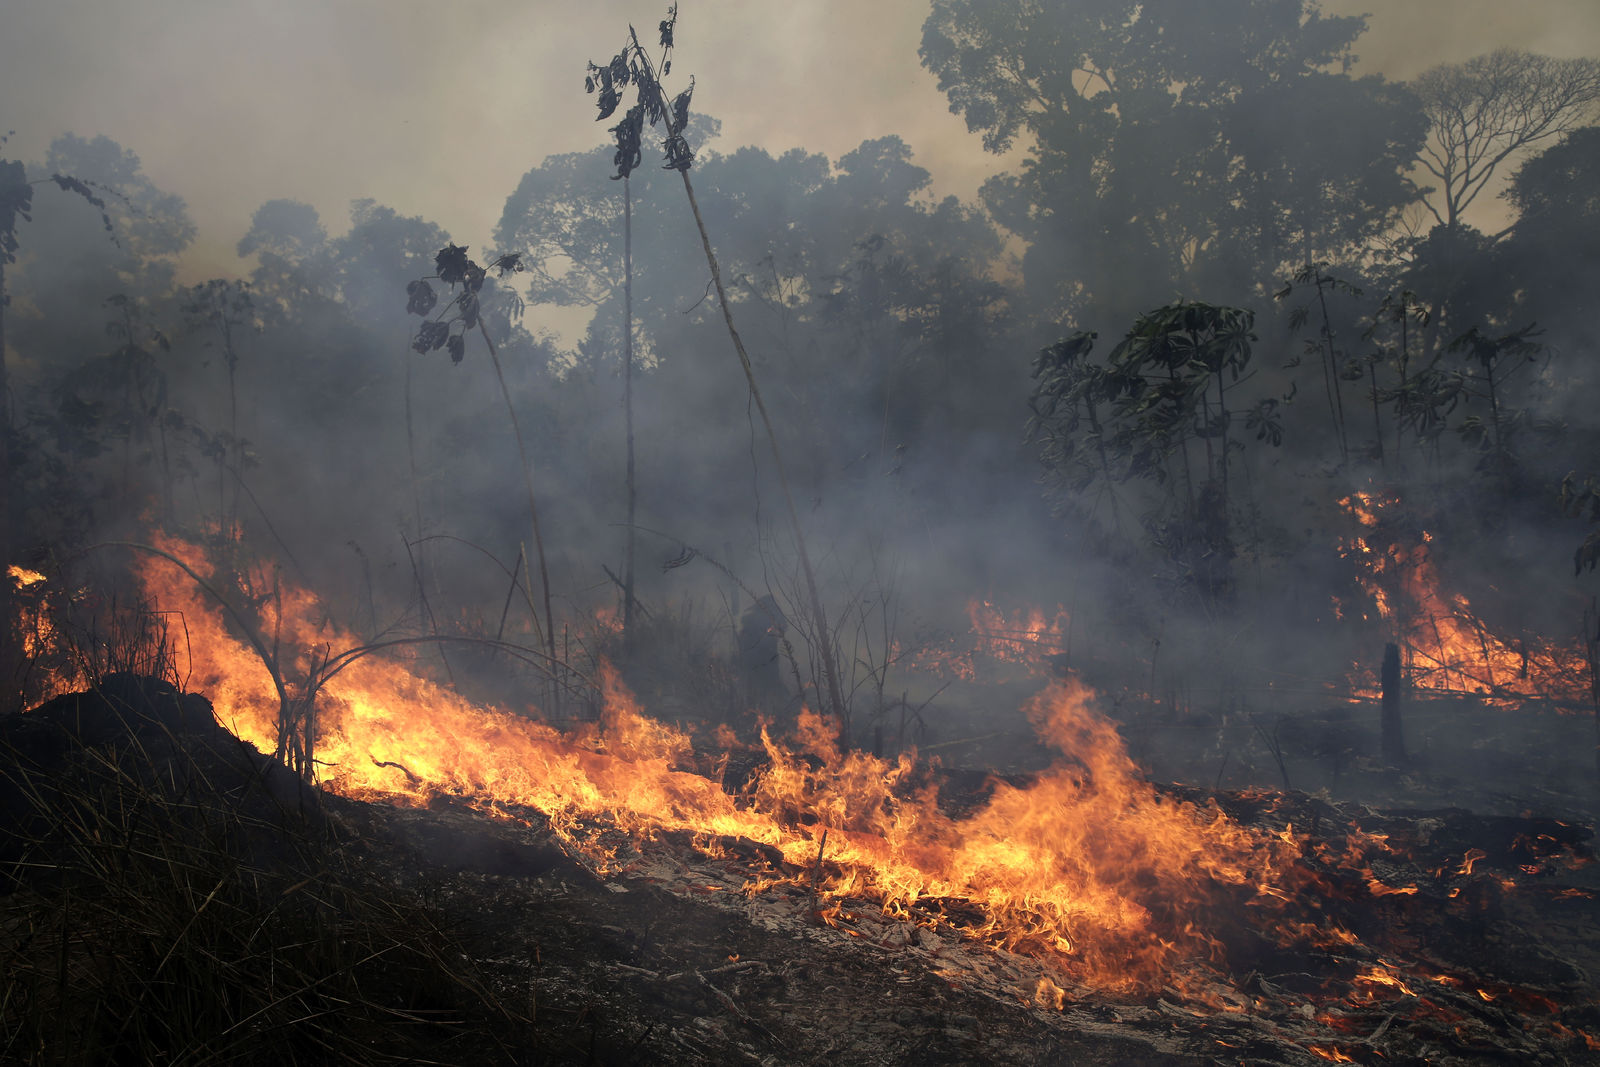 A fire burns along the road to Jacunda National Forest, near the city of Porto Velho in the Vila Nova Samuel region which is part of Brazil's Amazon, Monday, Aug. 26, 2019.{ } (AP Photo/Eraldo Peres)